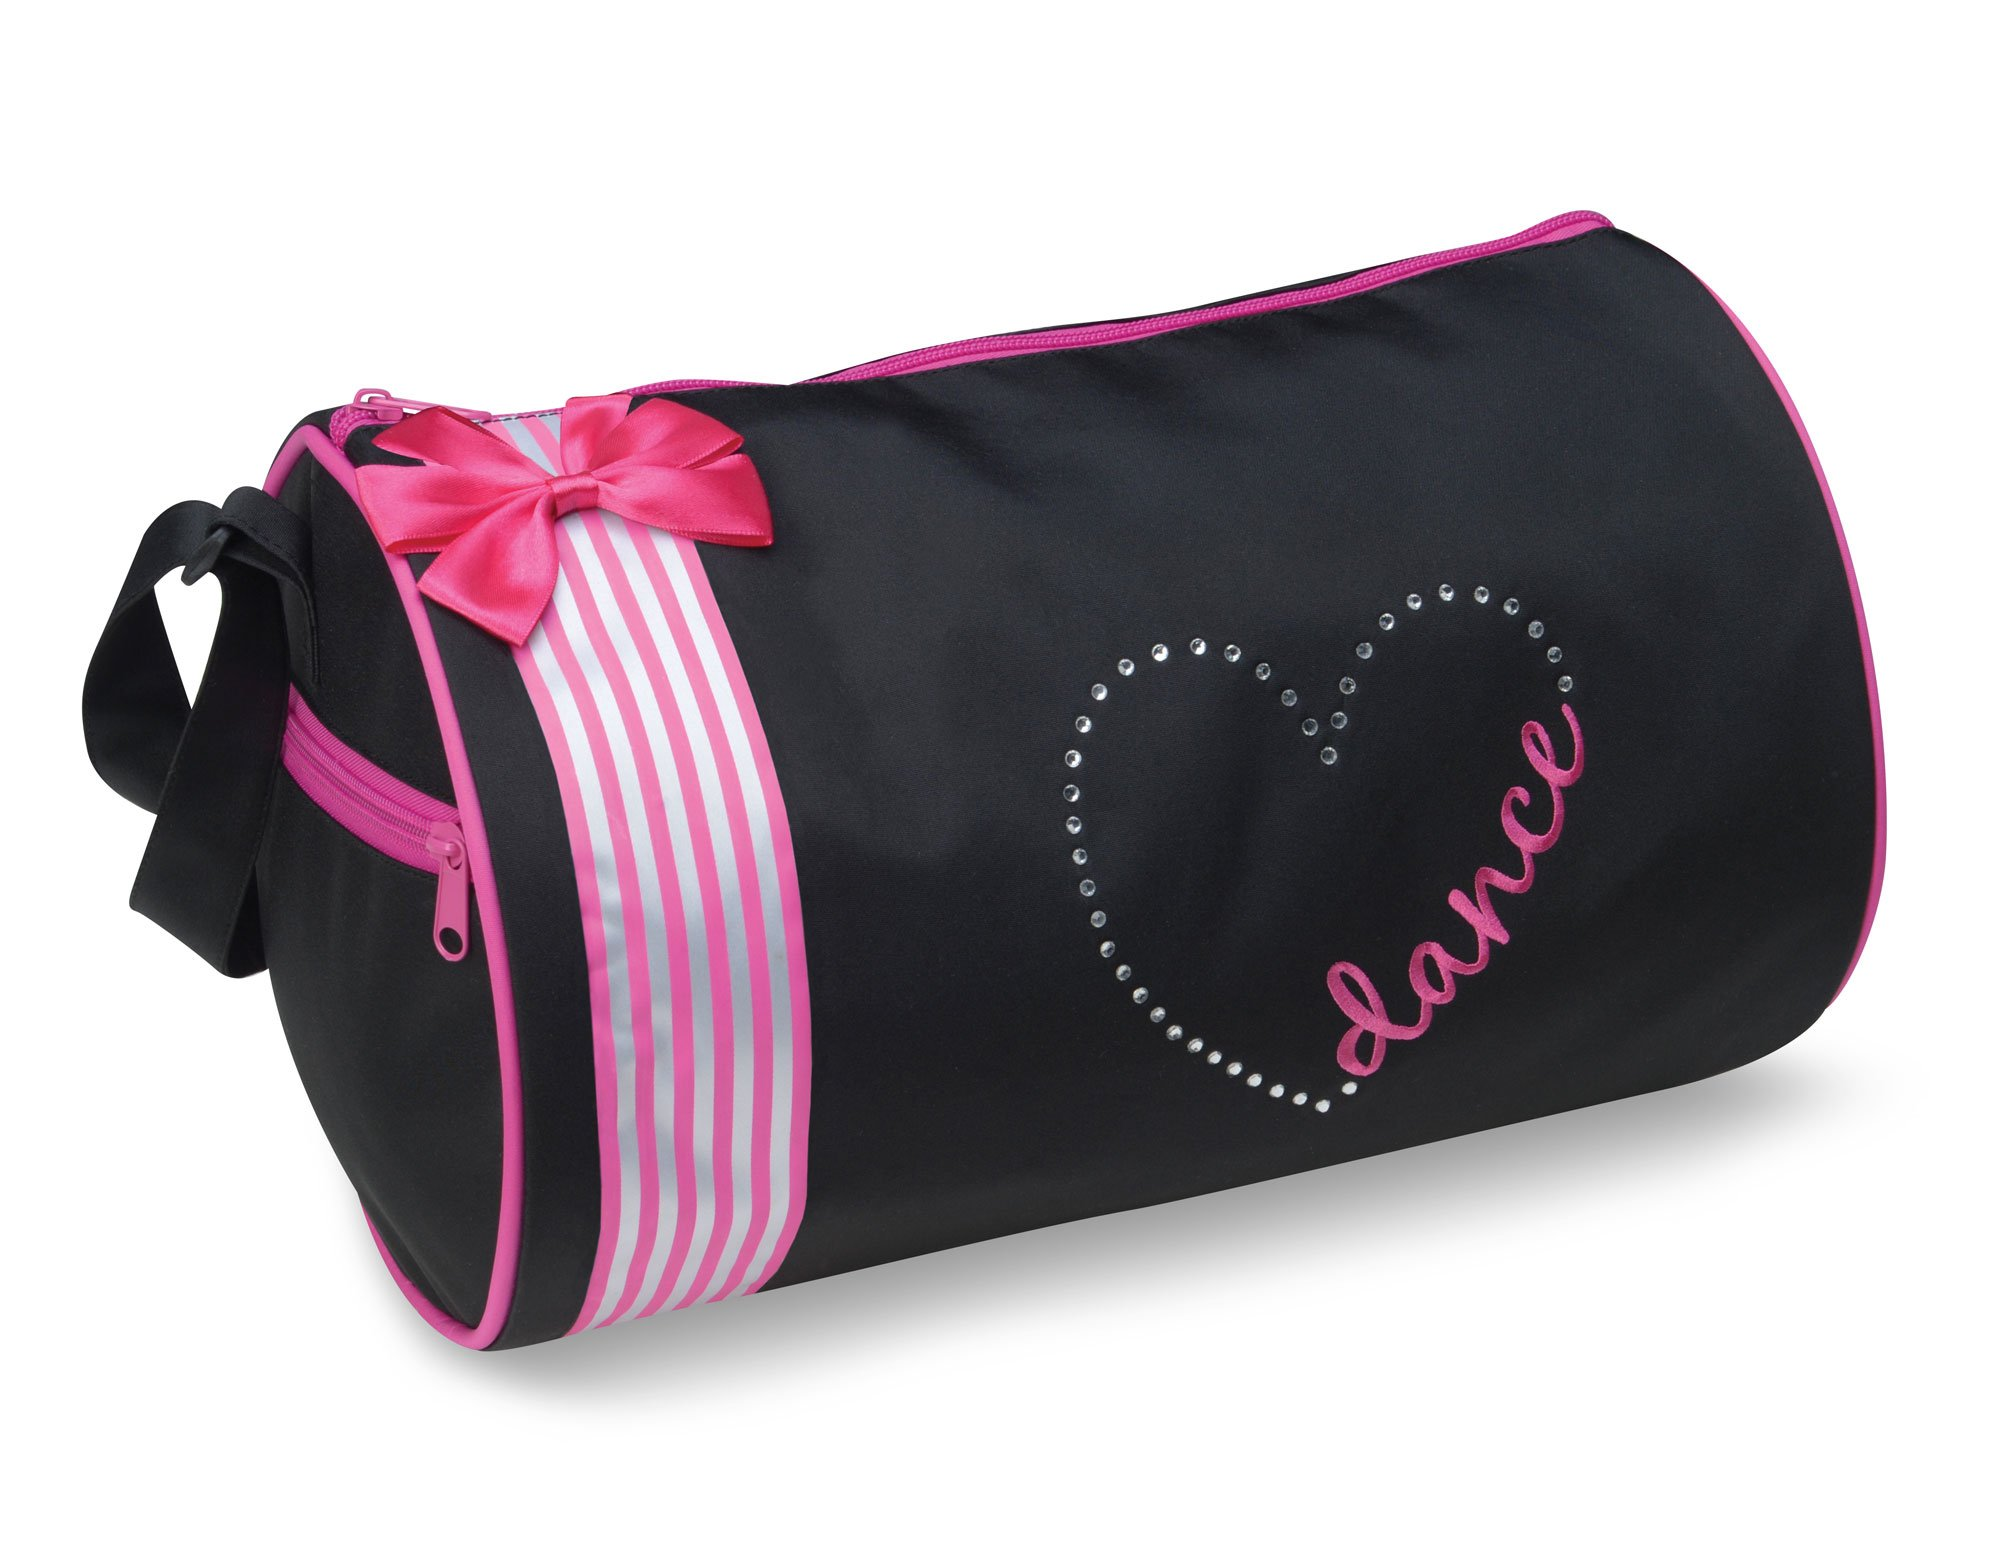 Dansbagz By Danshuz Women's Dance Heart Duffel Bag, Black, Pink, OS